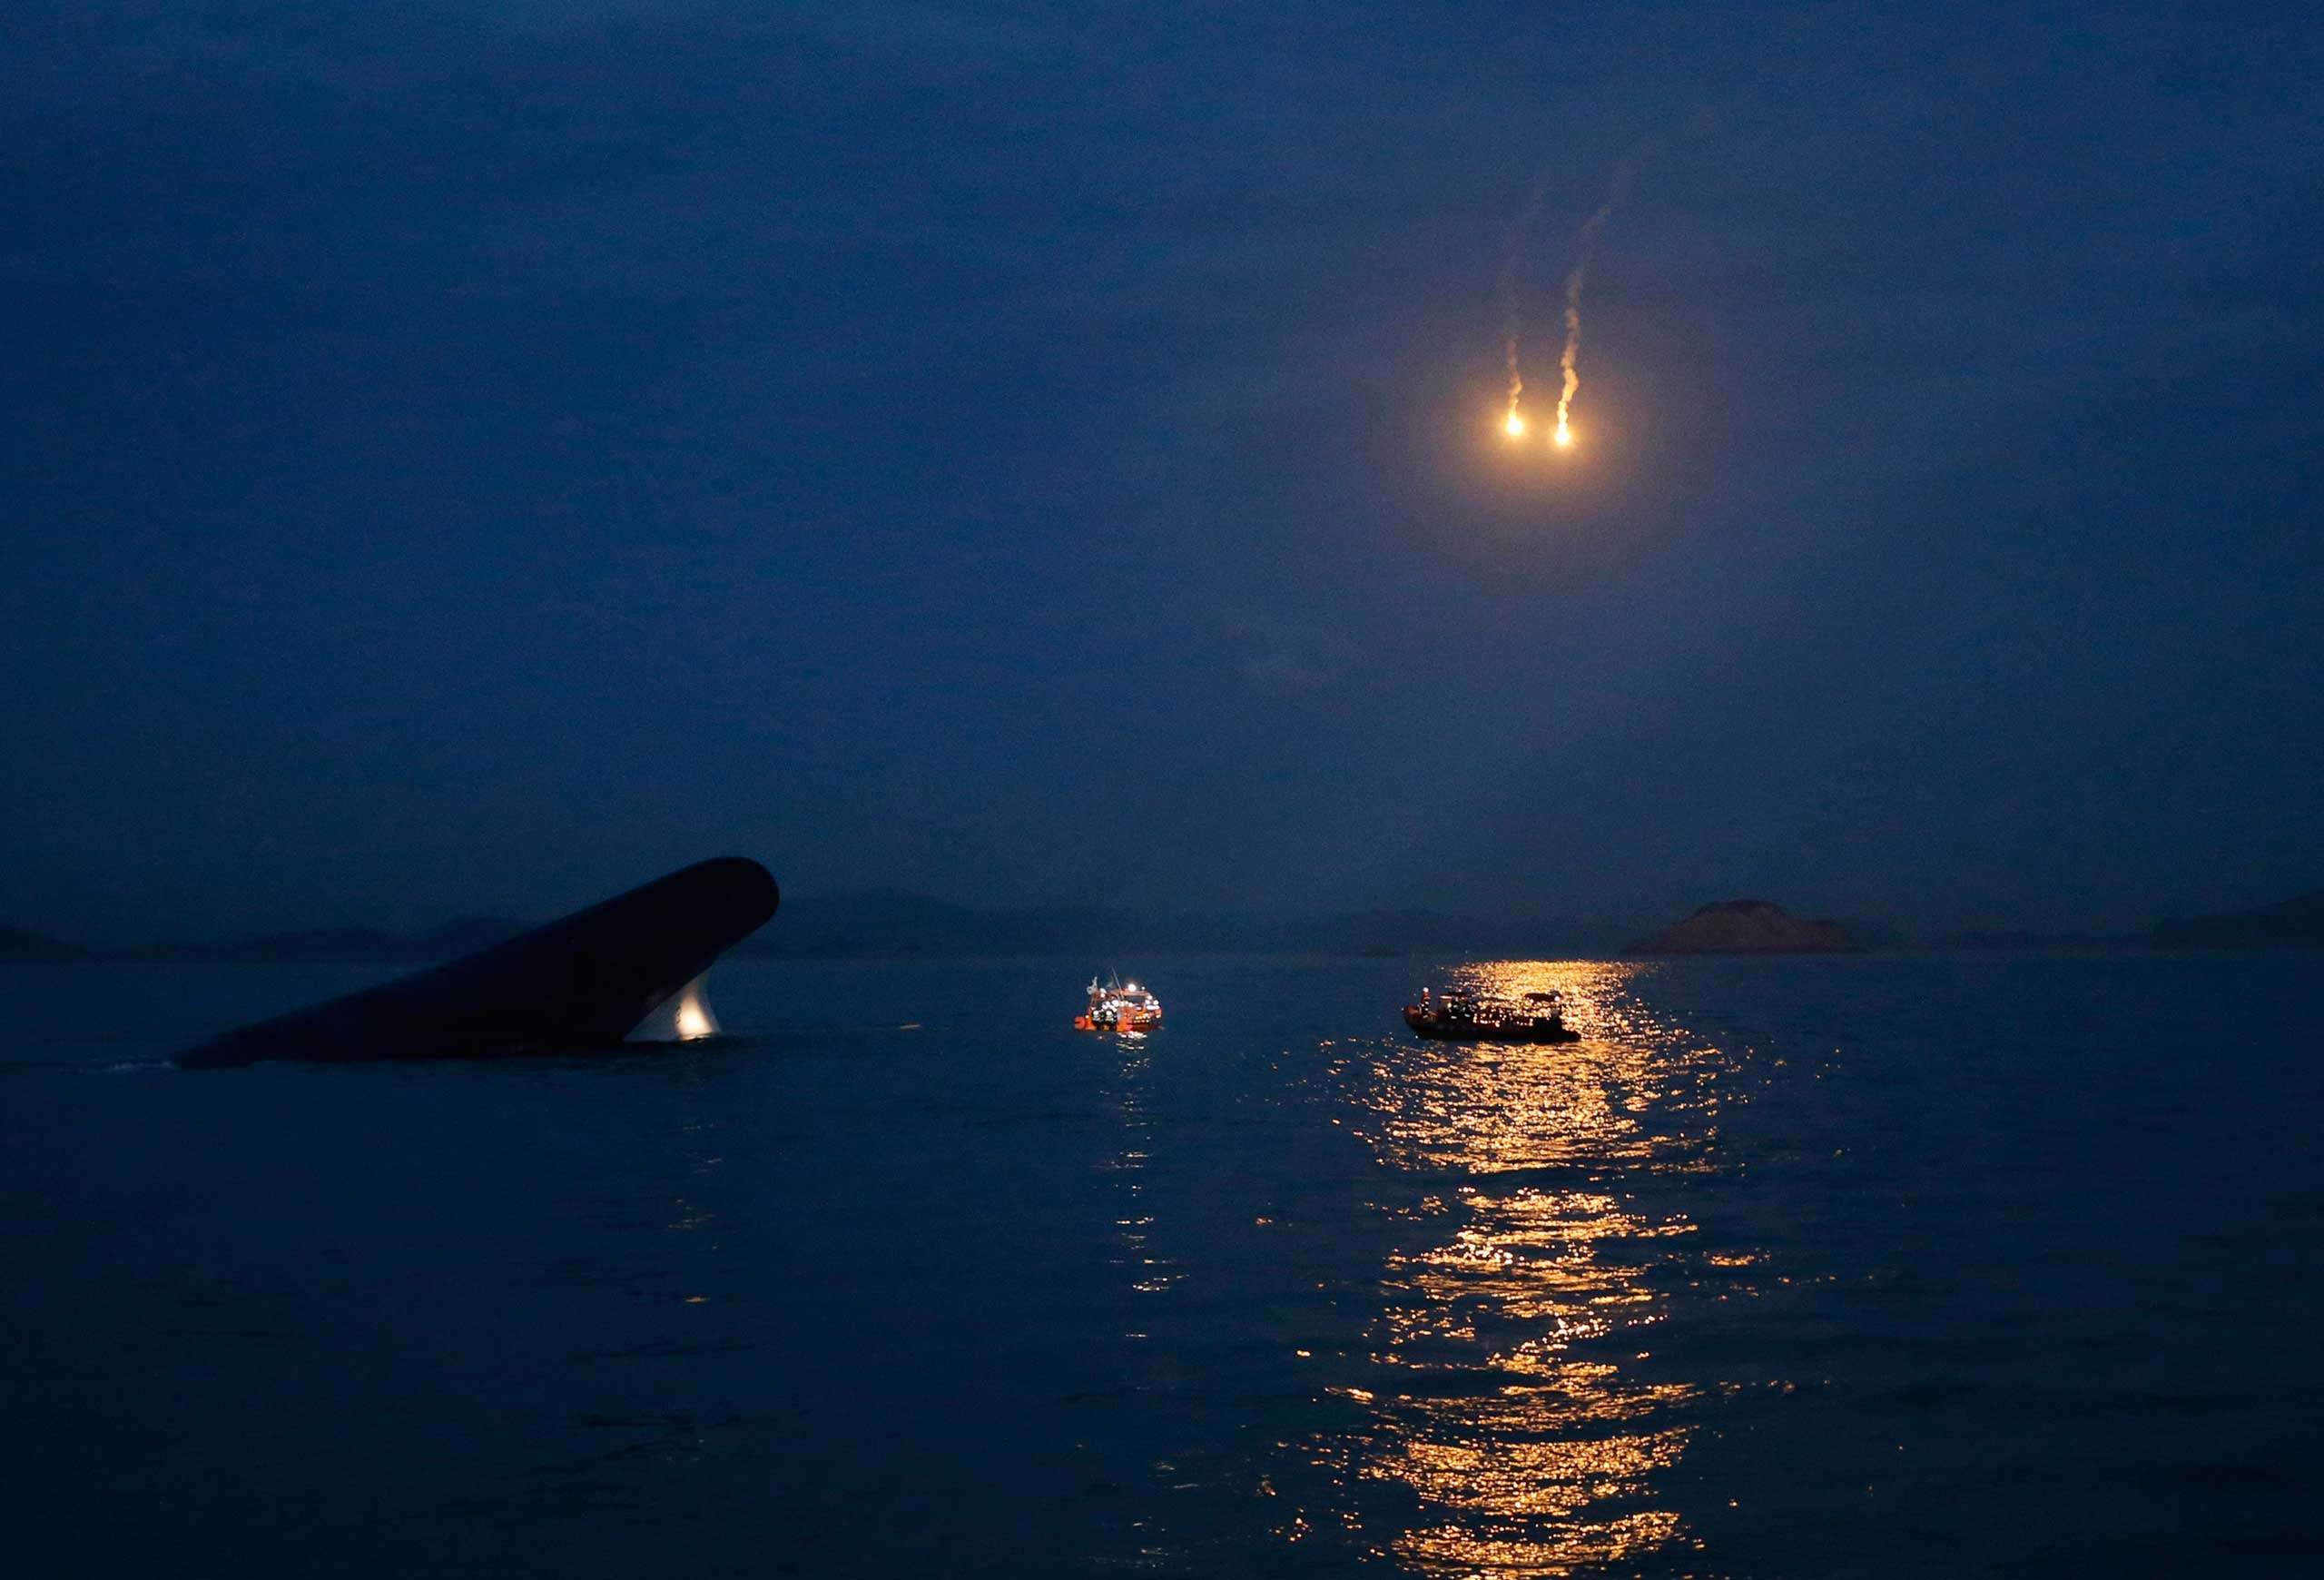 The South Korean ferry  Sewol  is seen sinking in the sea off Jindo, South Korea as lighting flares are released for a night search, April 16, 2014.